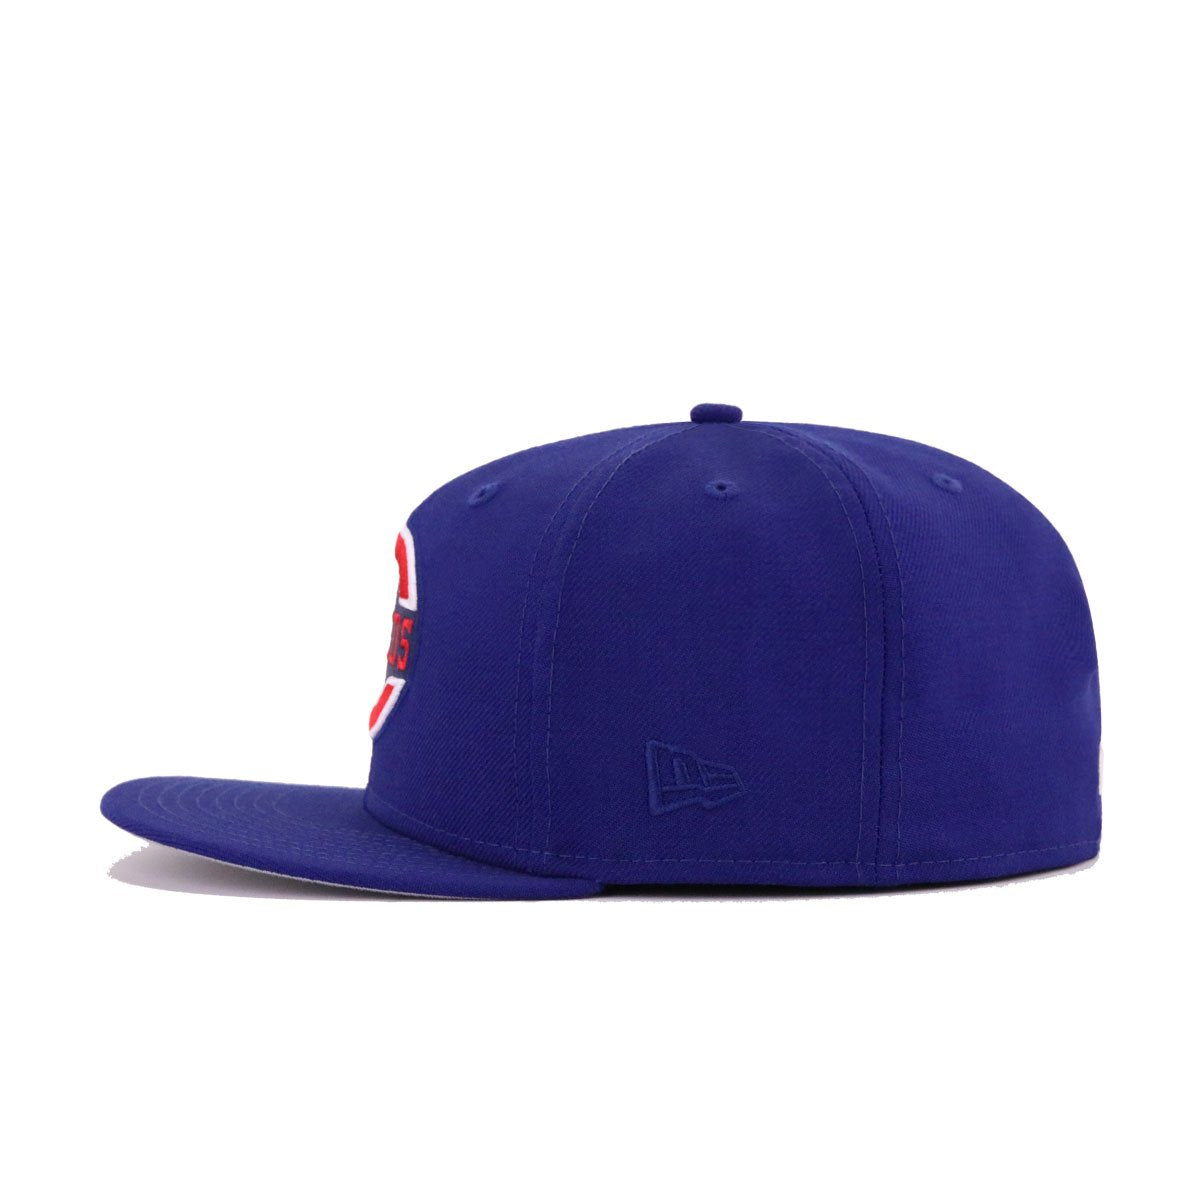 Cincinnati Reds Dark Royal Blue New Era 59Fifty Fitted